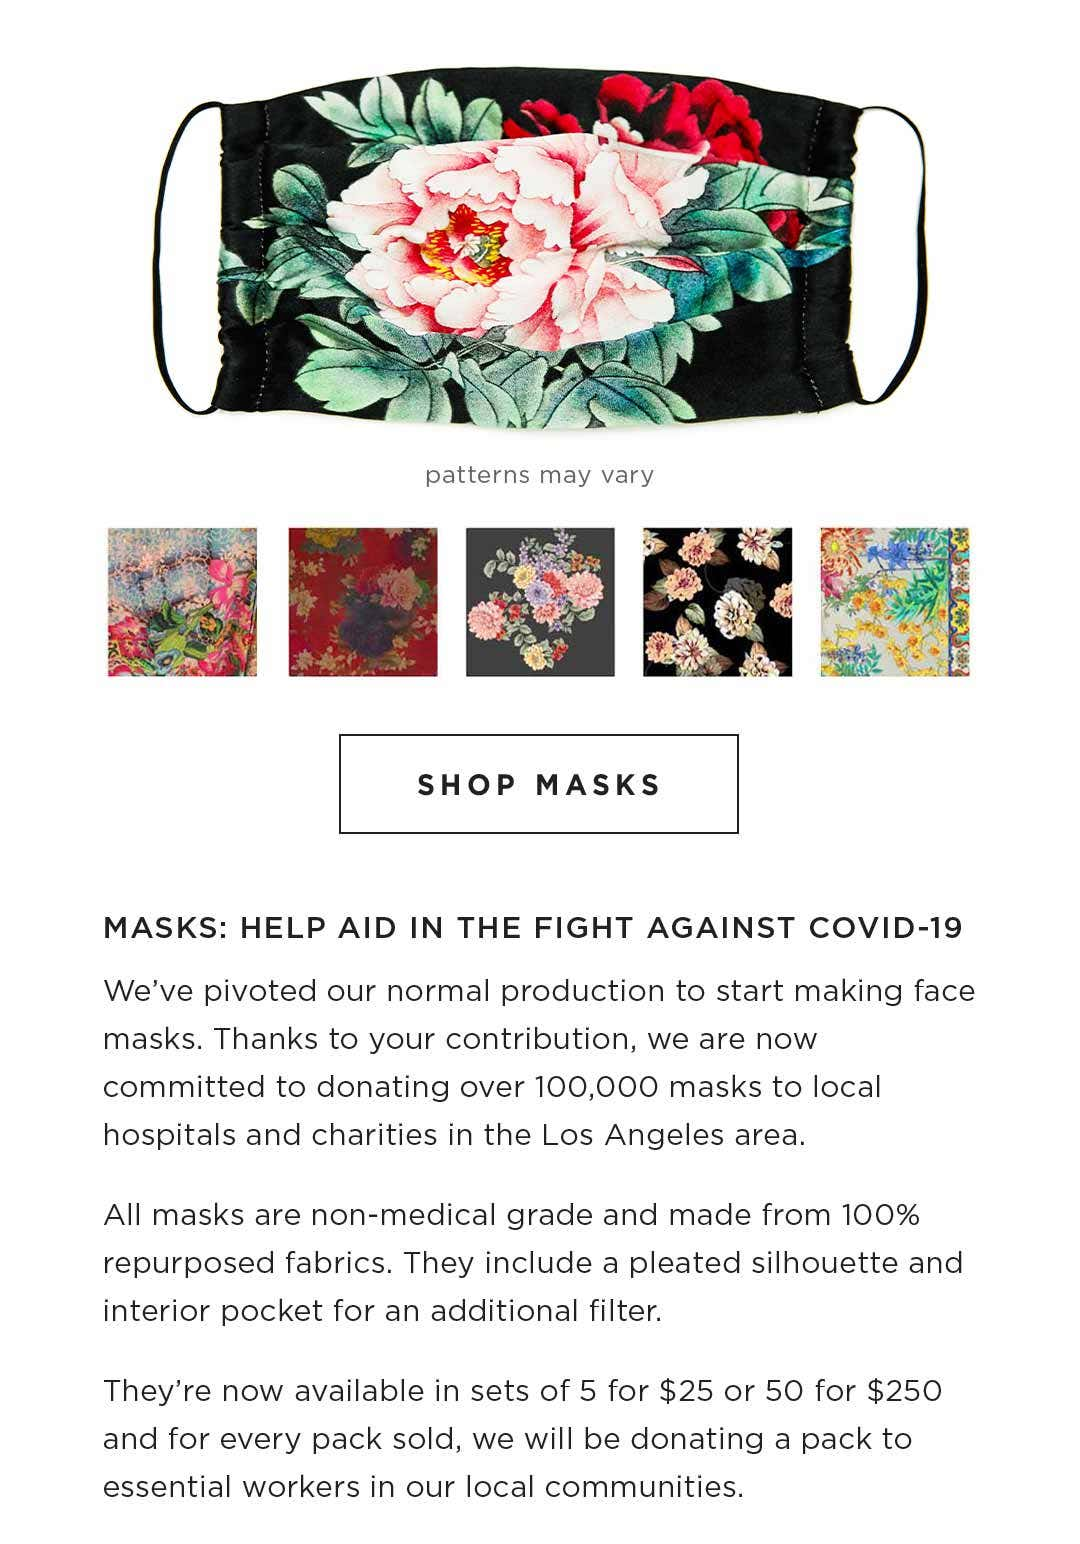 Shop Masks - Patterns may vary - MASKS: HELP AID IN THE FIGHT AGAINST COVID-19 We've pivoted our normal production to start making face masks. Thanks to your contribution, we are now committed to donating over 100,000 masks to local hospitals and chariti